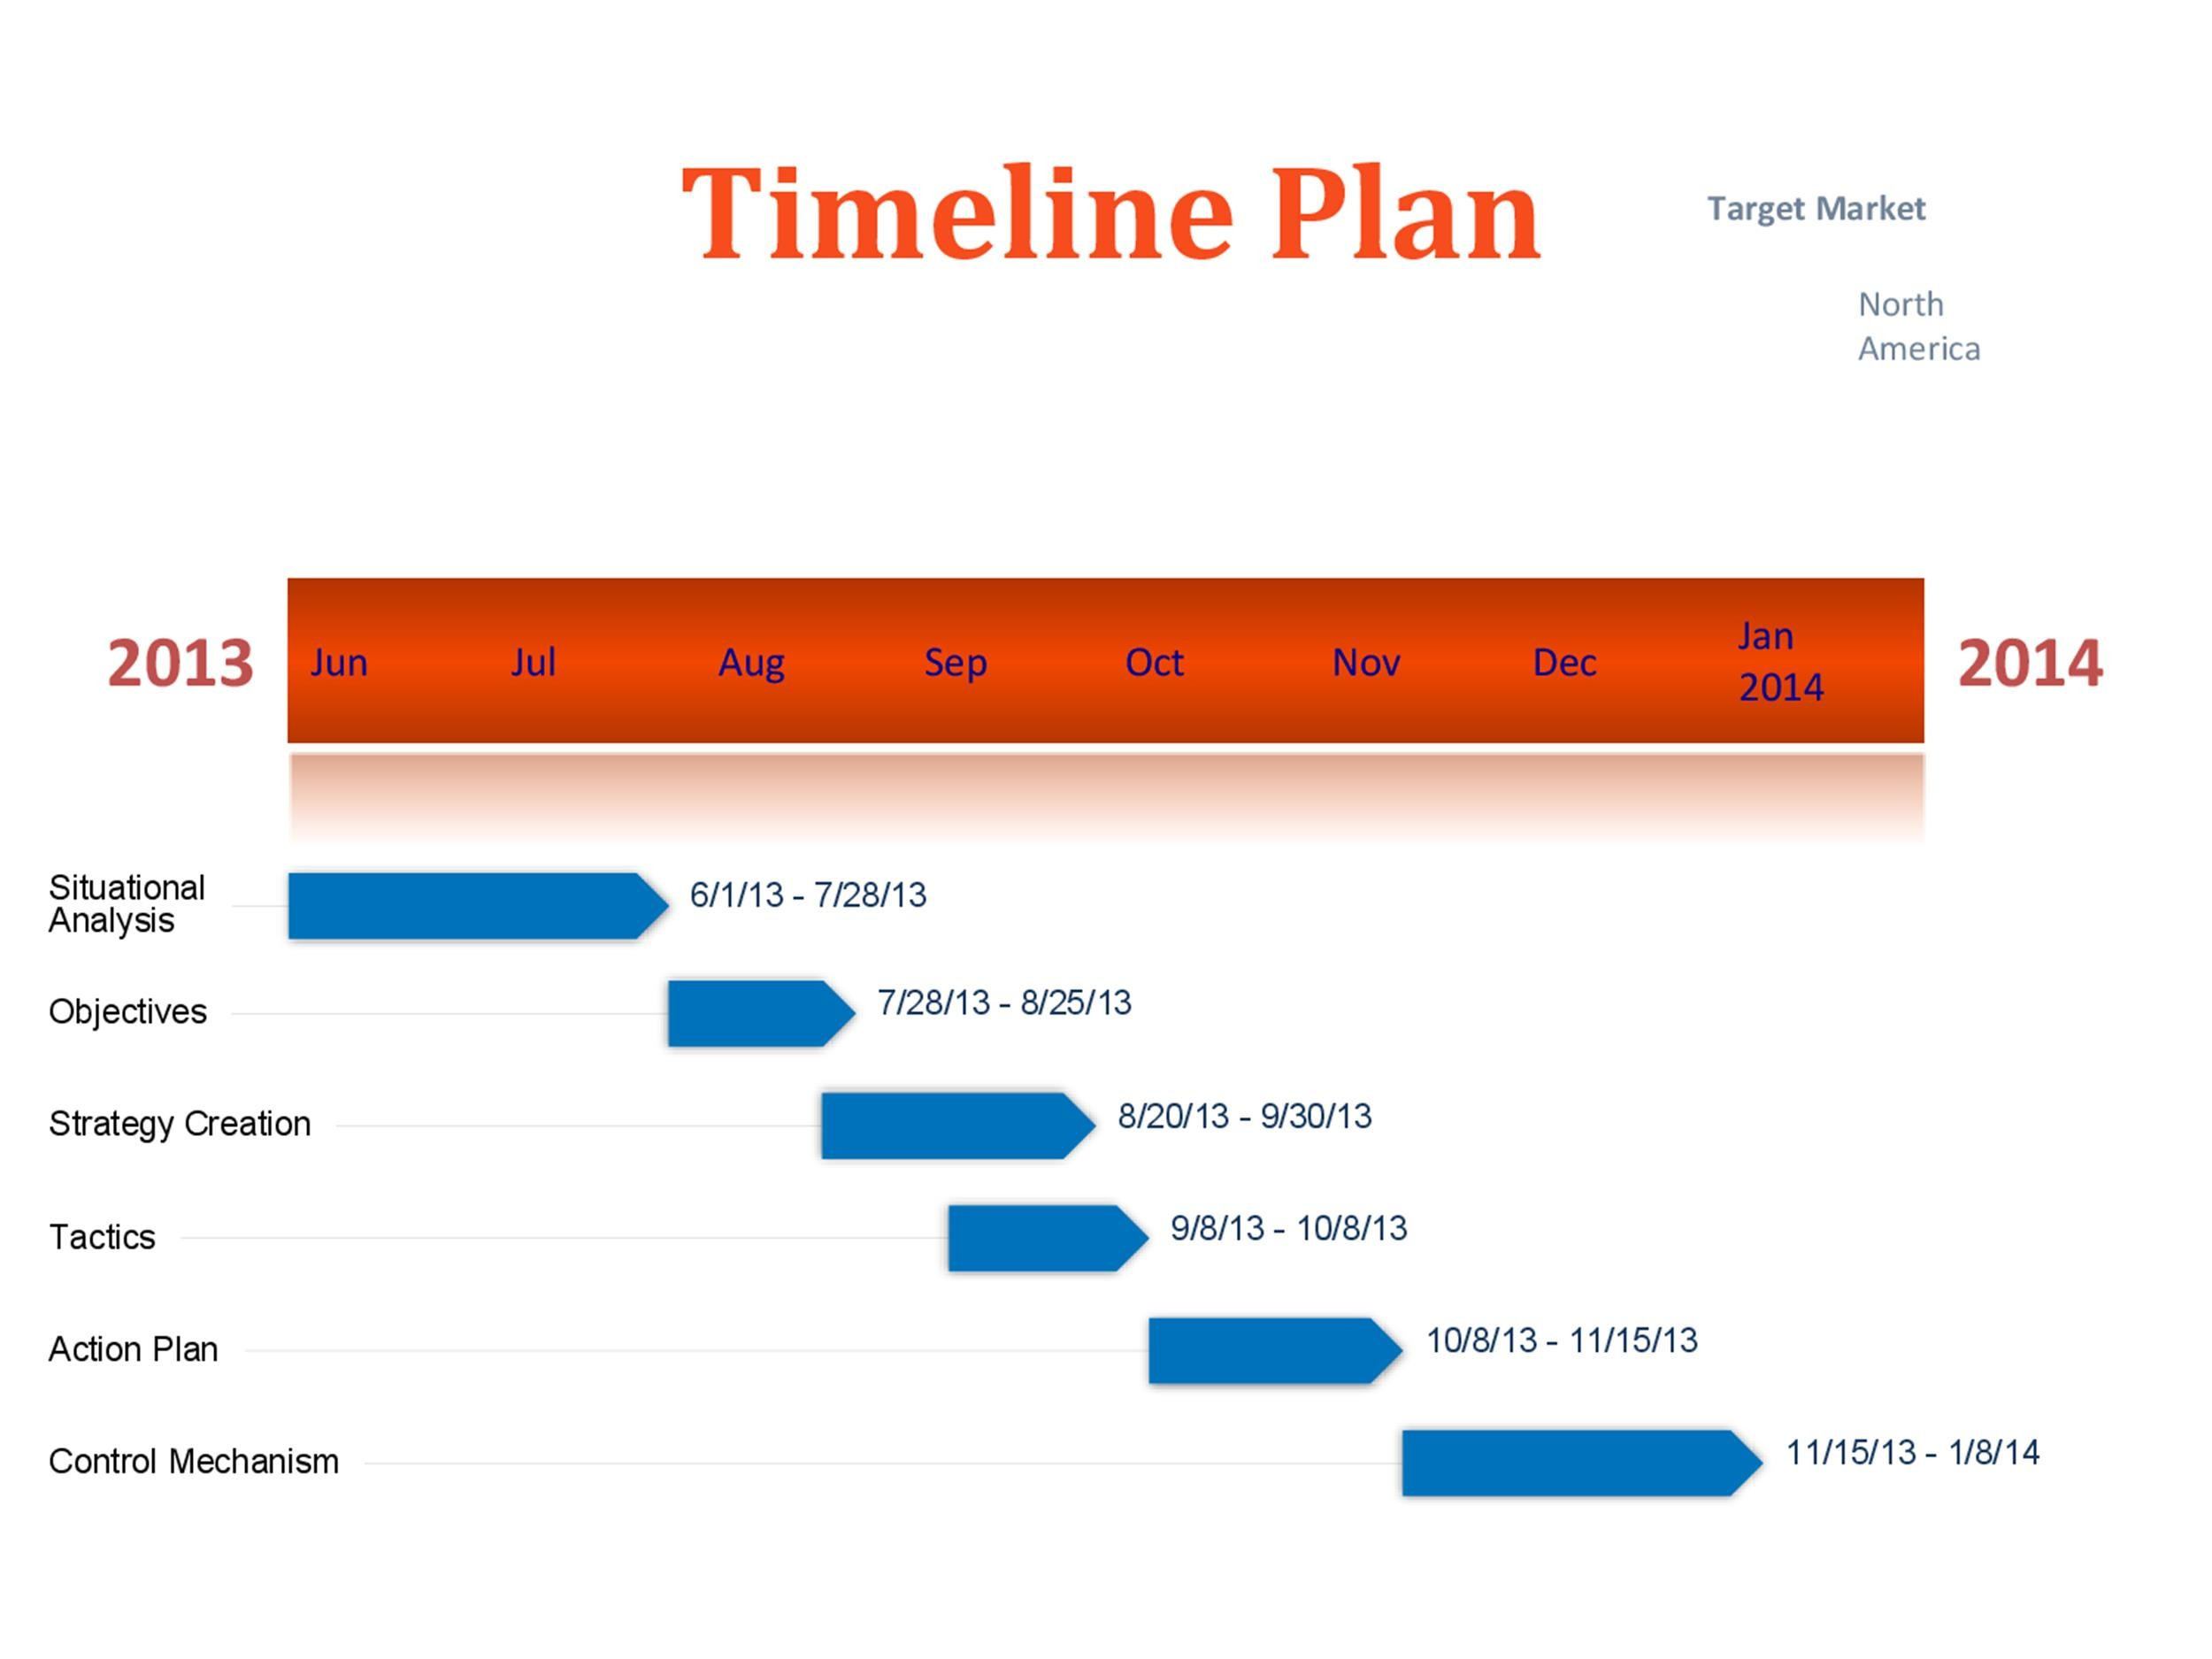 30+ Timeline Templates (Excel, Power Point, Word) - Template Lab - career timeline template